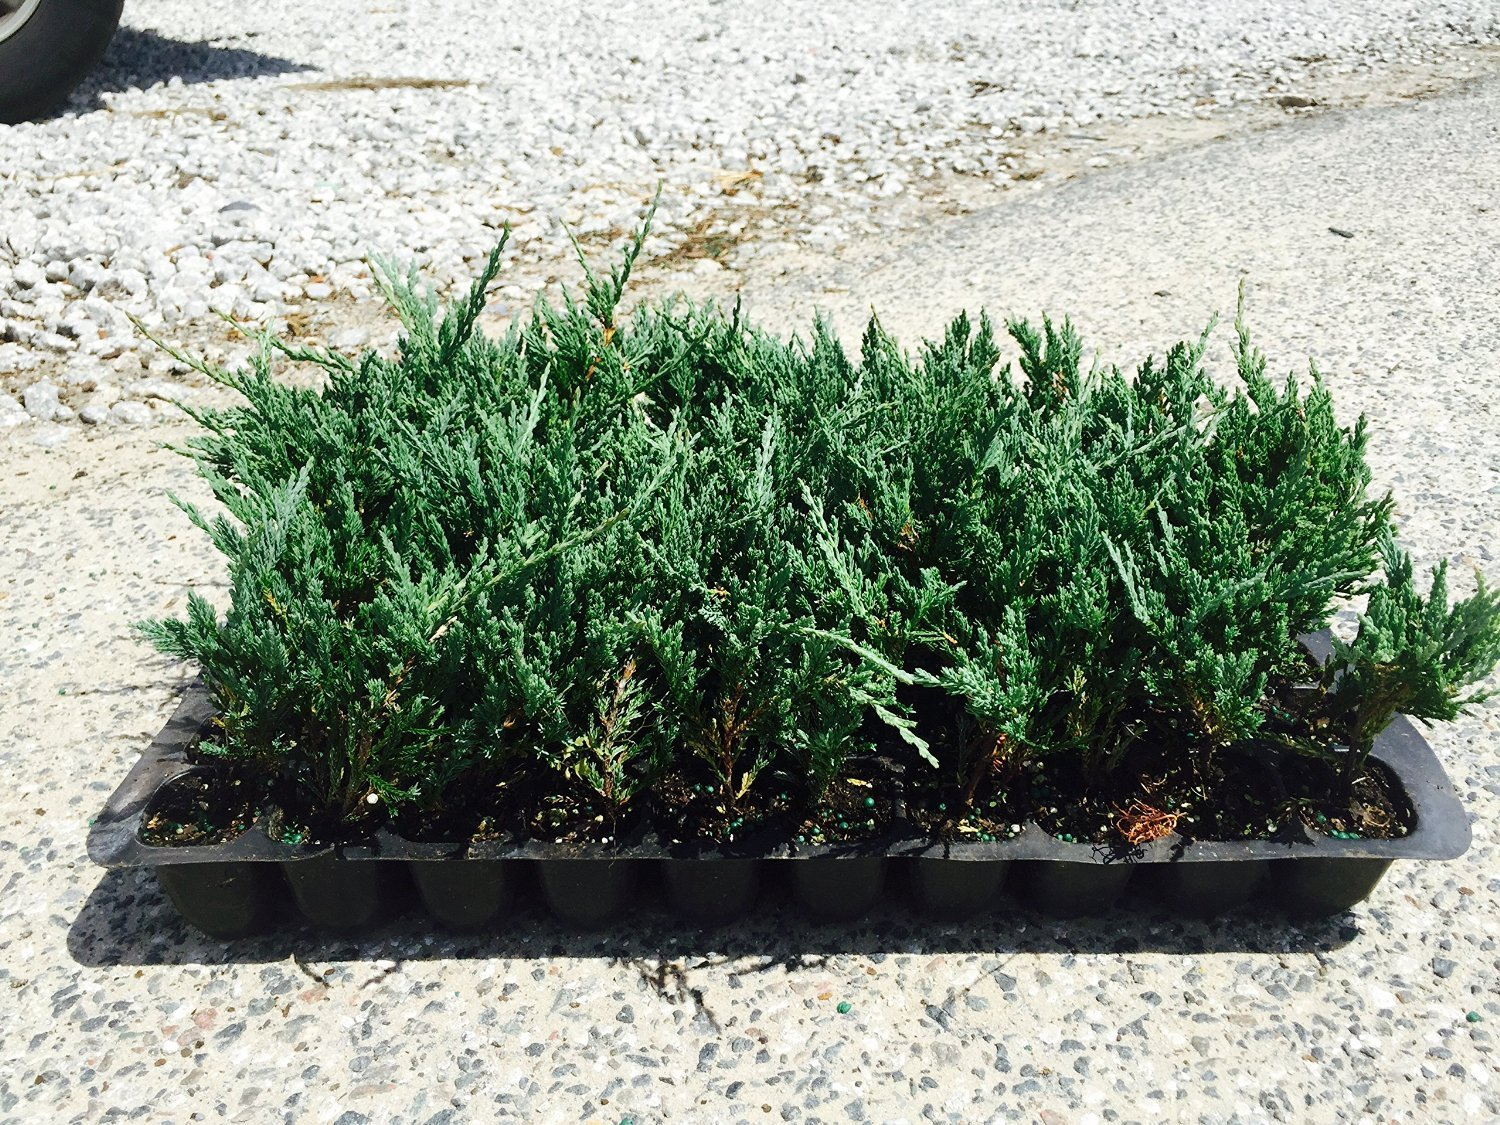 Juniper Bar Harbor Qty 60 Live Plants Evergreen Ground Cover by Florida Foliage (Image #1)